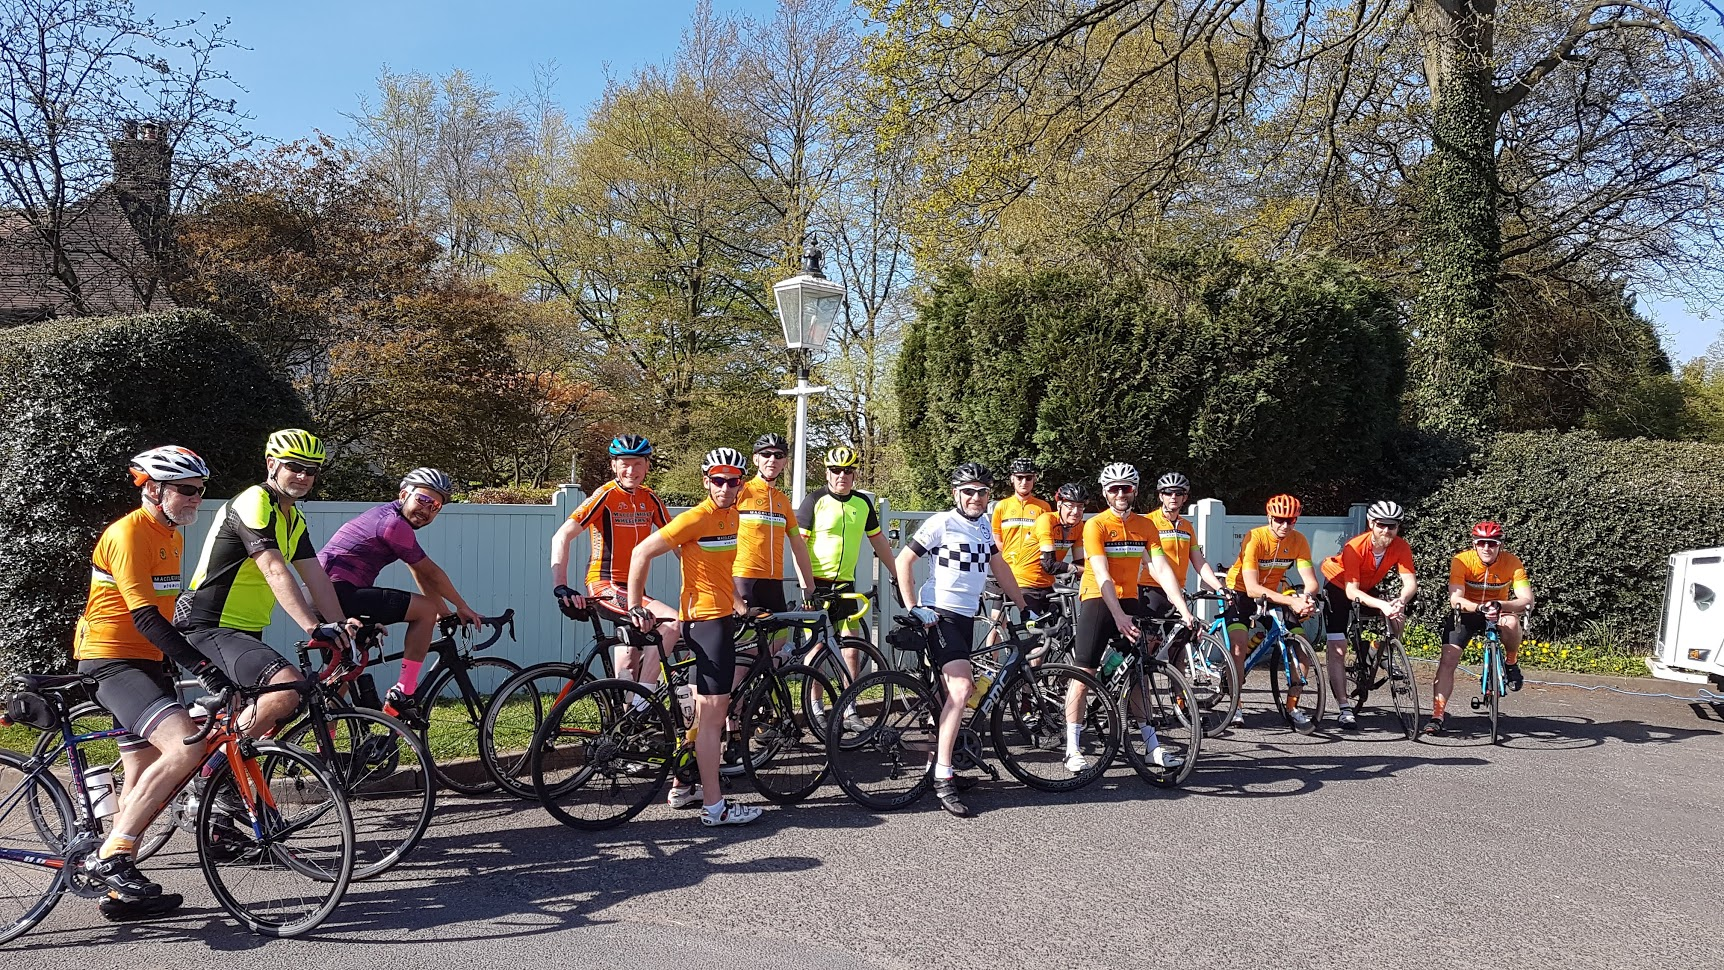 Larks and Larklings mingle in South Park with the casual disregard for rank and formality that has become a defining characteristic of these rides. L to R: Greg, Ewan, Bennet, Dave W, Christian, Eddie, Andrew, Pete, Ian, Steve, Elliot, Russell, Mark, Paul, Dave H.